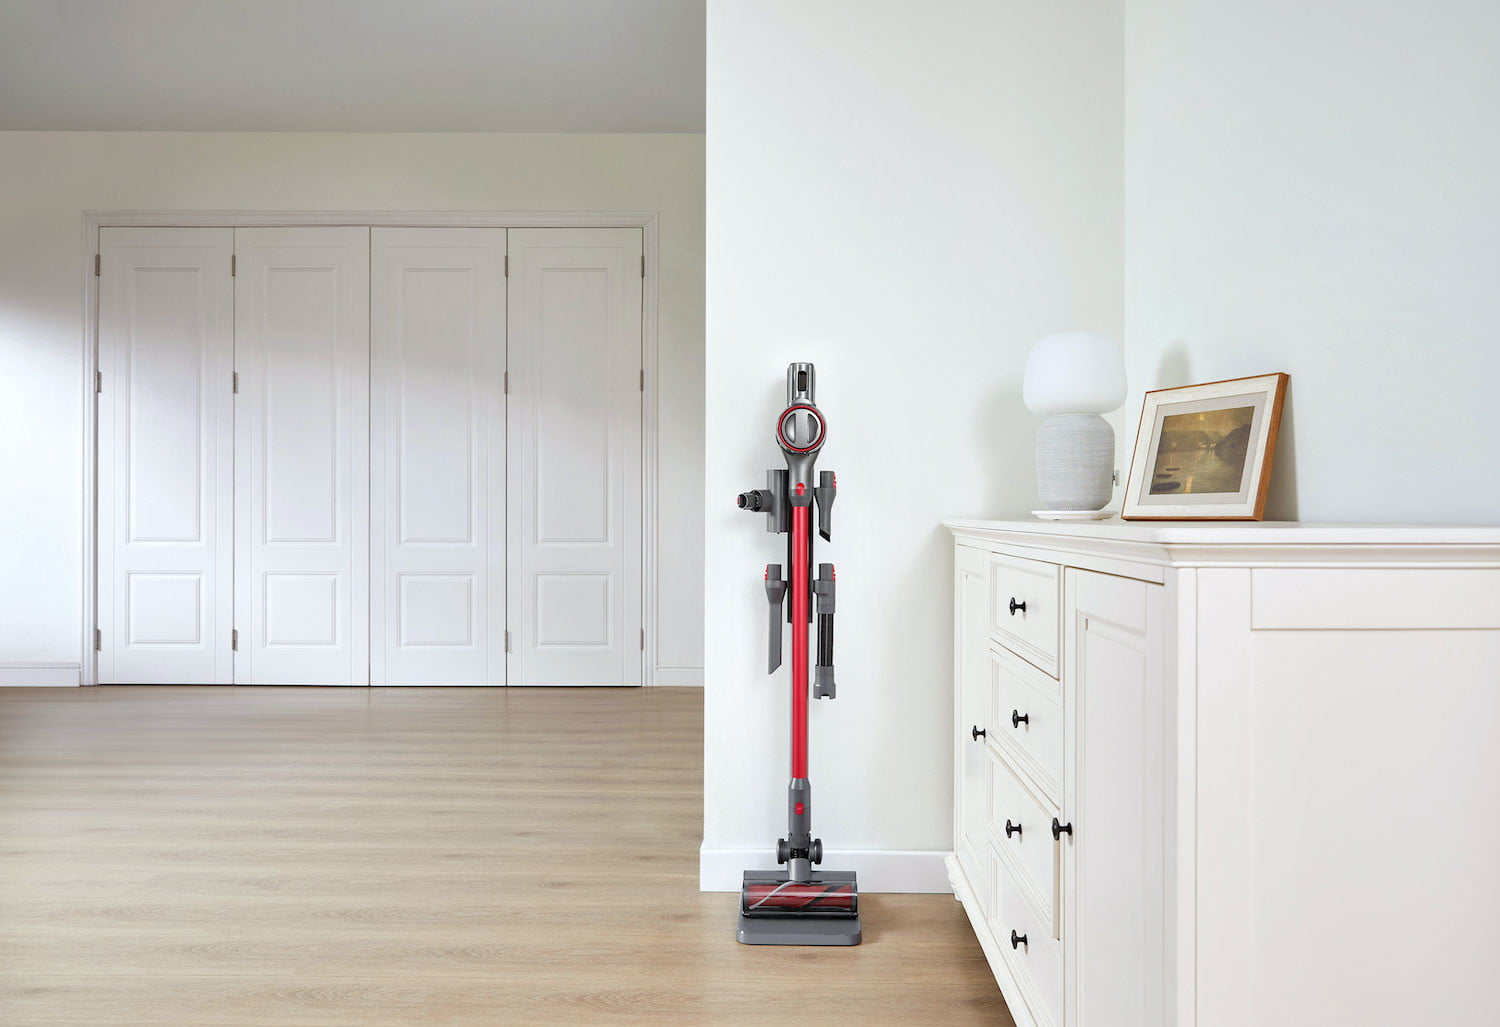 The Roborock H7 is both a vacuum cleaner and a mop